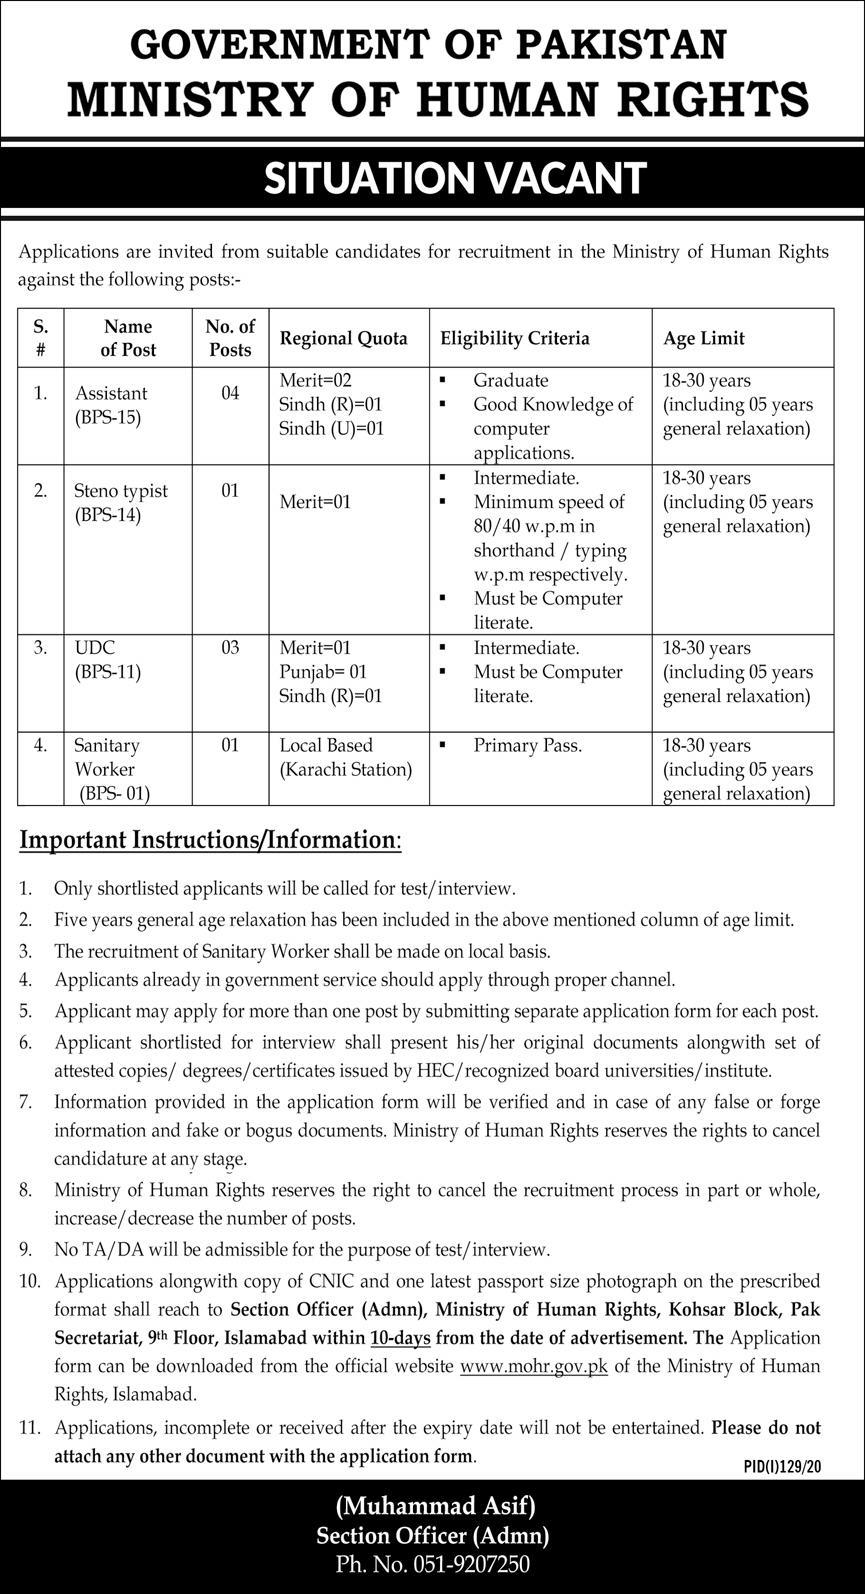 Ministry of Human Rights MOHR Jobs 2020 in Islamabad